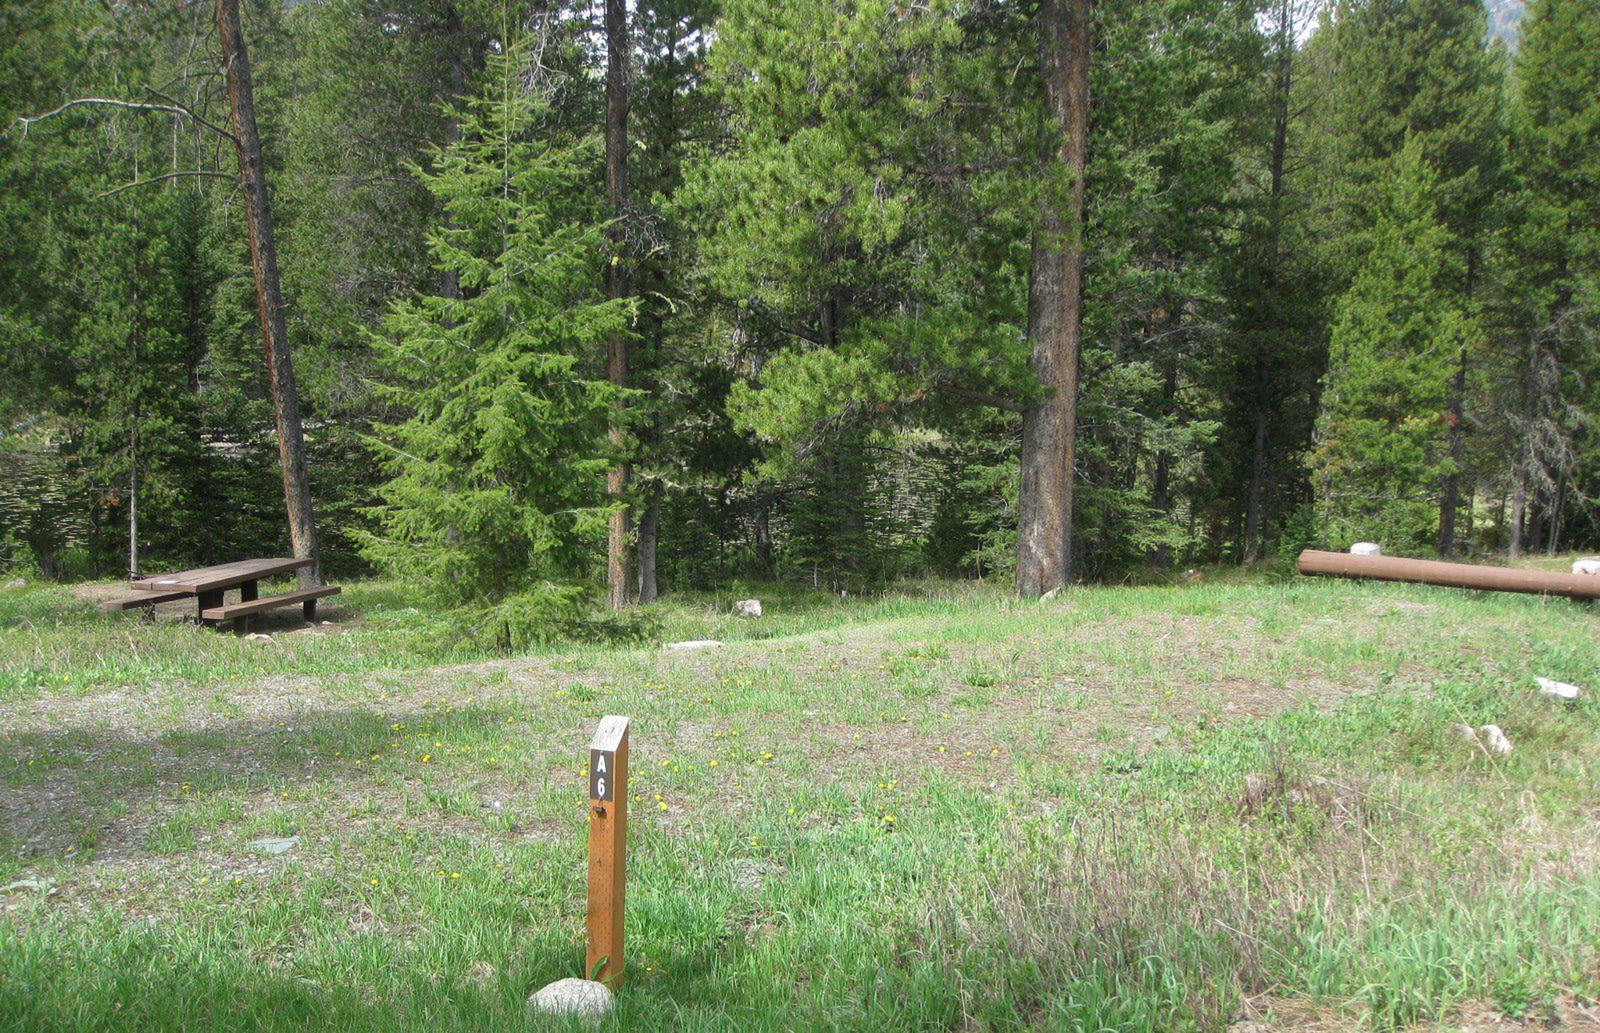 Site A6, campsite surrounded by pine trees, picnic table & fire ringSite A6